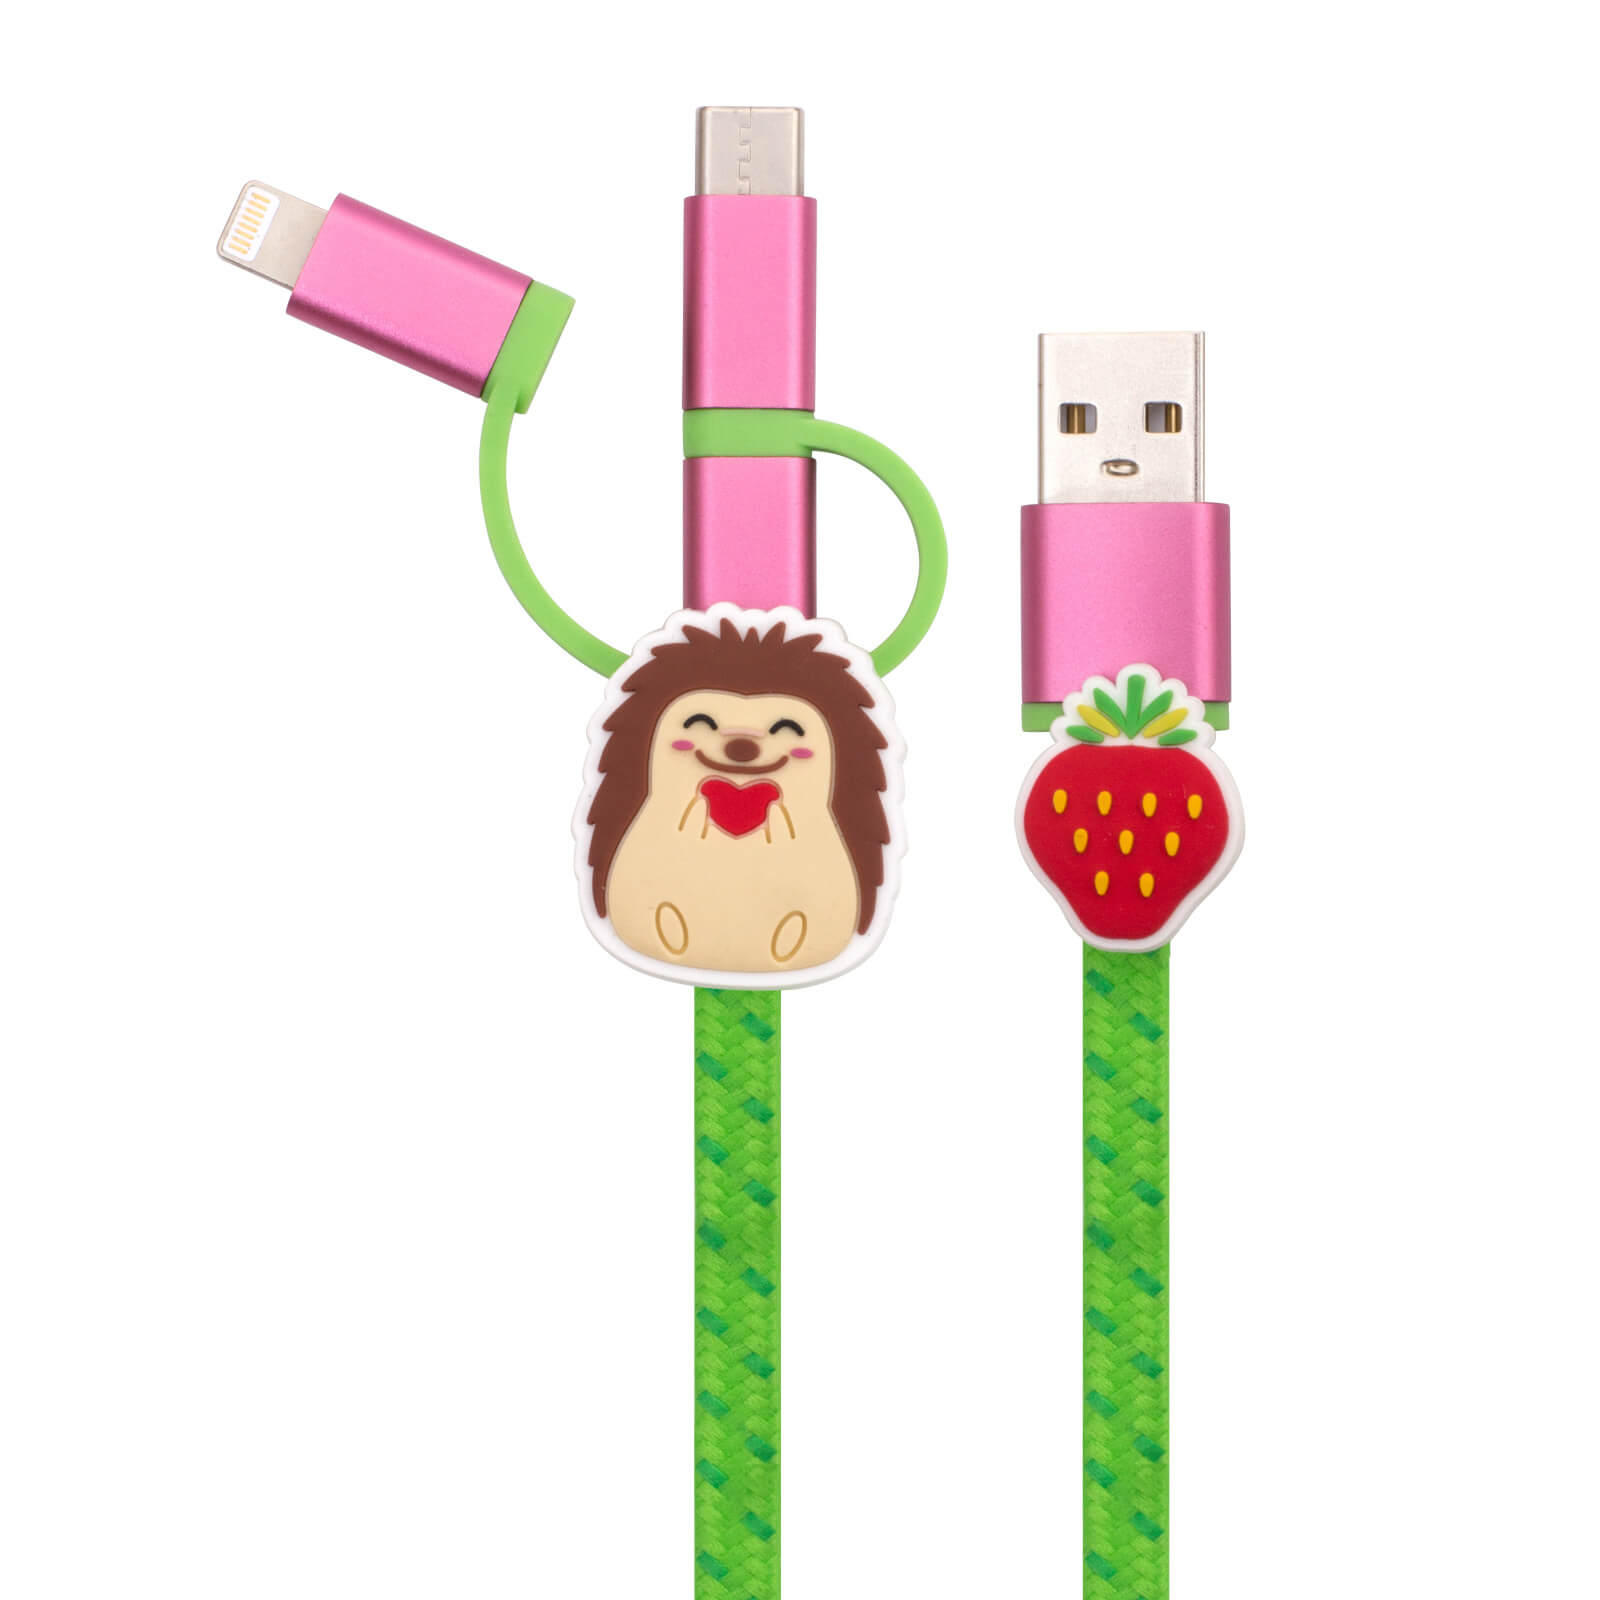 Image of Hedgehog 3-in-1 Cable